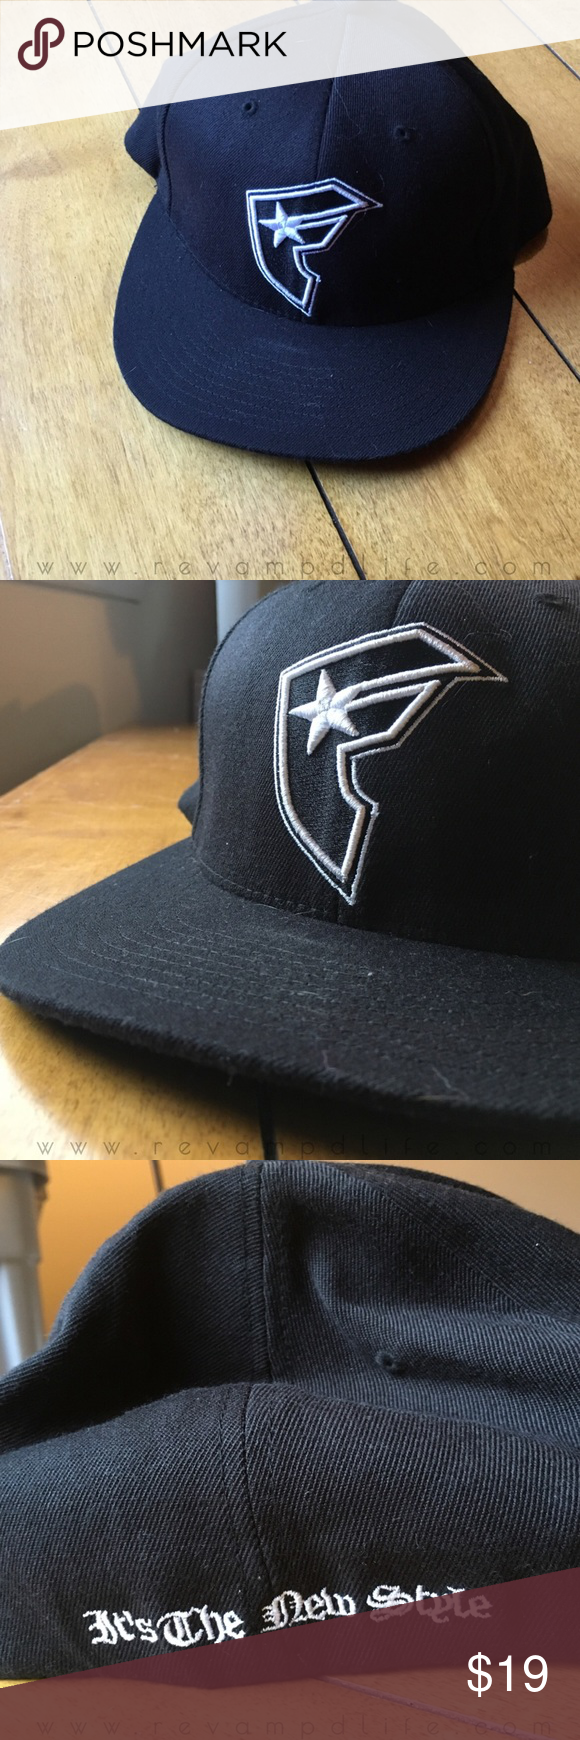 "Like new FAMOUS stars & straps flex fit cap **PURCHASE NOW & HAVE BY CHRISTMAS! GUARANTEED!**  ☠️ LIKE NEW BLACK FITTED STARS & STRAPS FLEXFIT CAP SIZE L-XL • Excellent used condition, never worn • bright black and white, crisp looking  • says ""it's the new style"" on back ------ // bundle to save // accepting all reasonable offers // #famous #starsandstraps #skateboarding #rock  #zumiez #spencers  #hottopic #black #fitted #flatbrim #hat  #cap Famous Stars & Straps Accessories Hats"